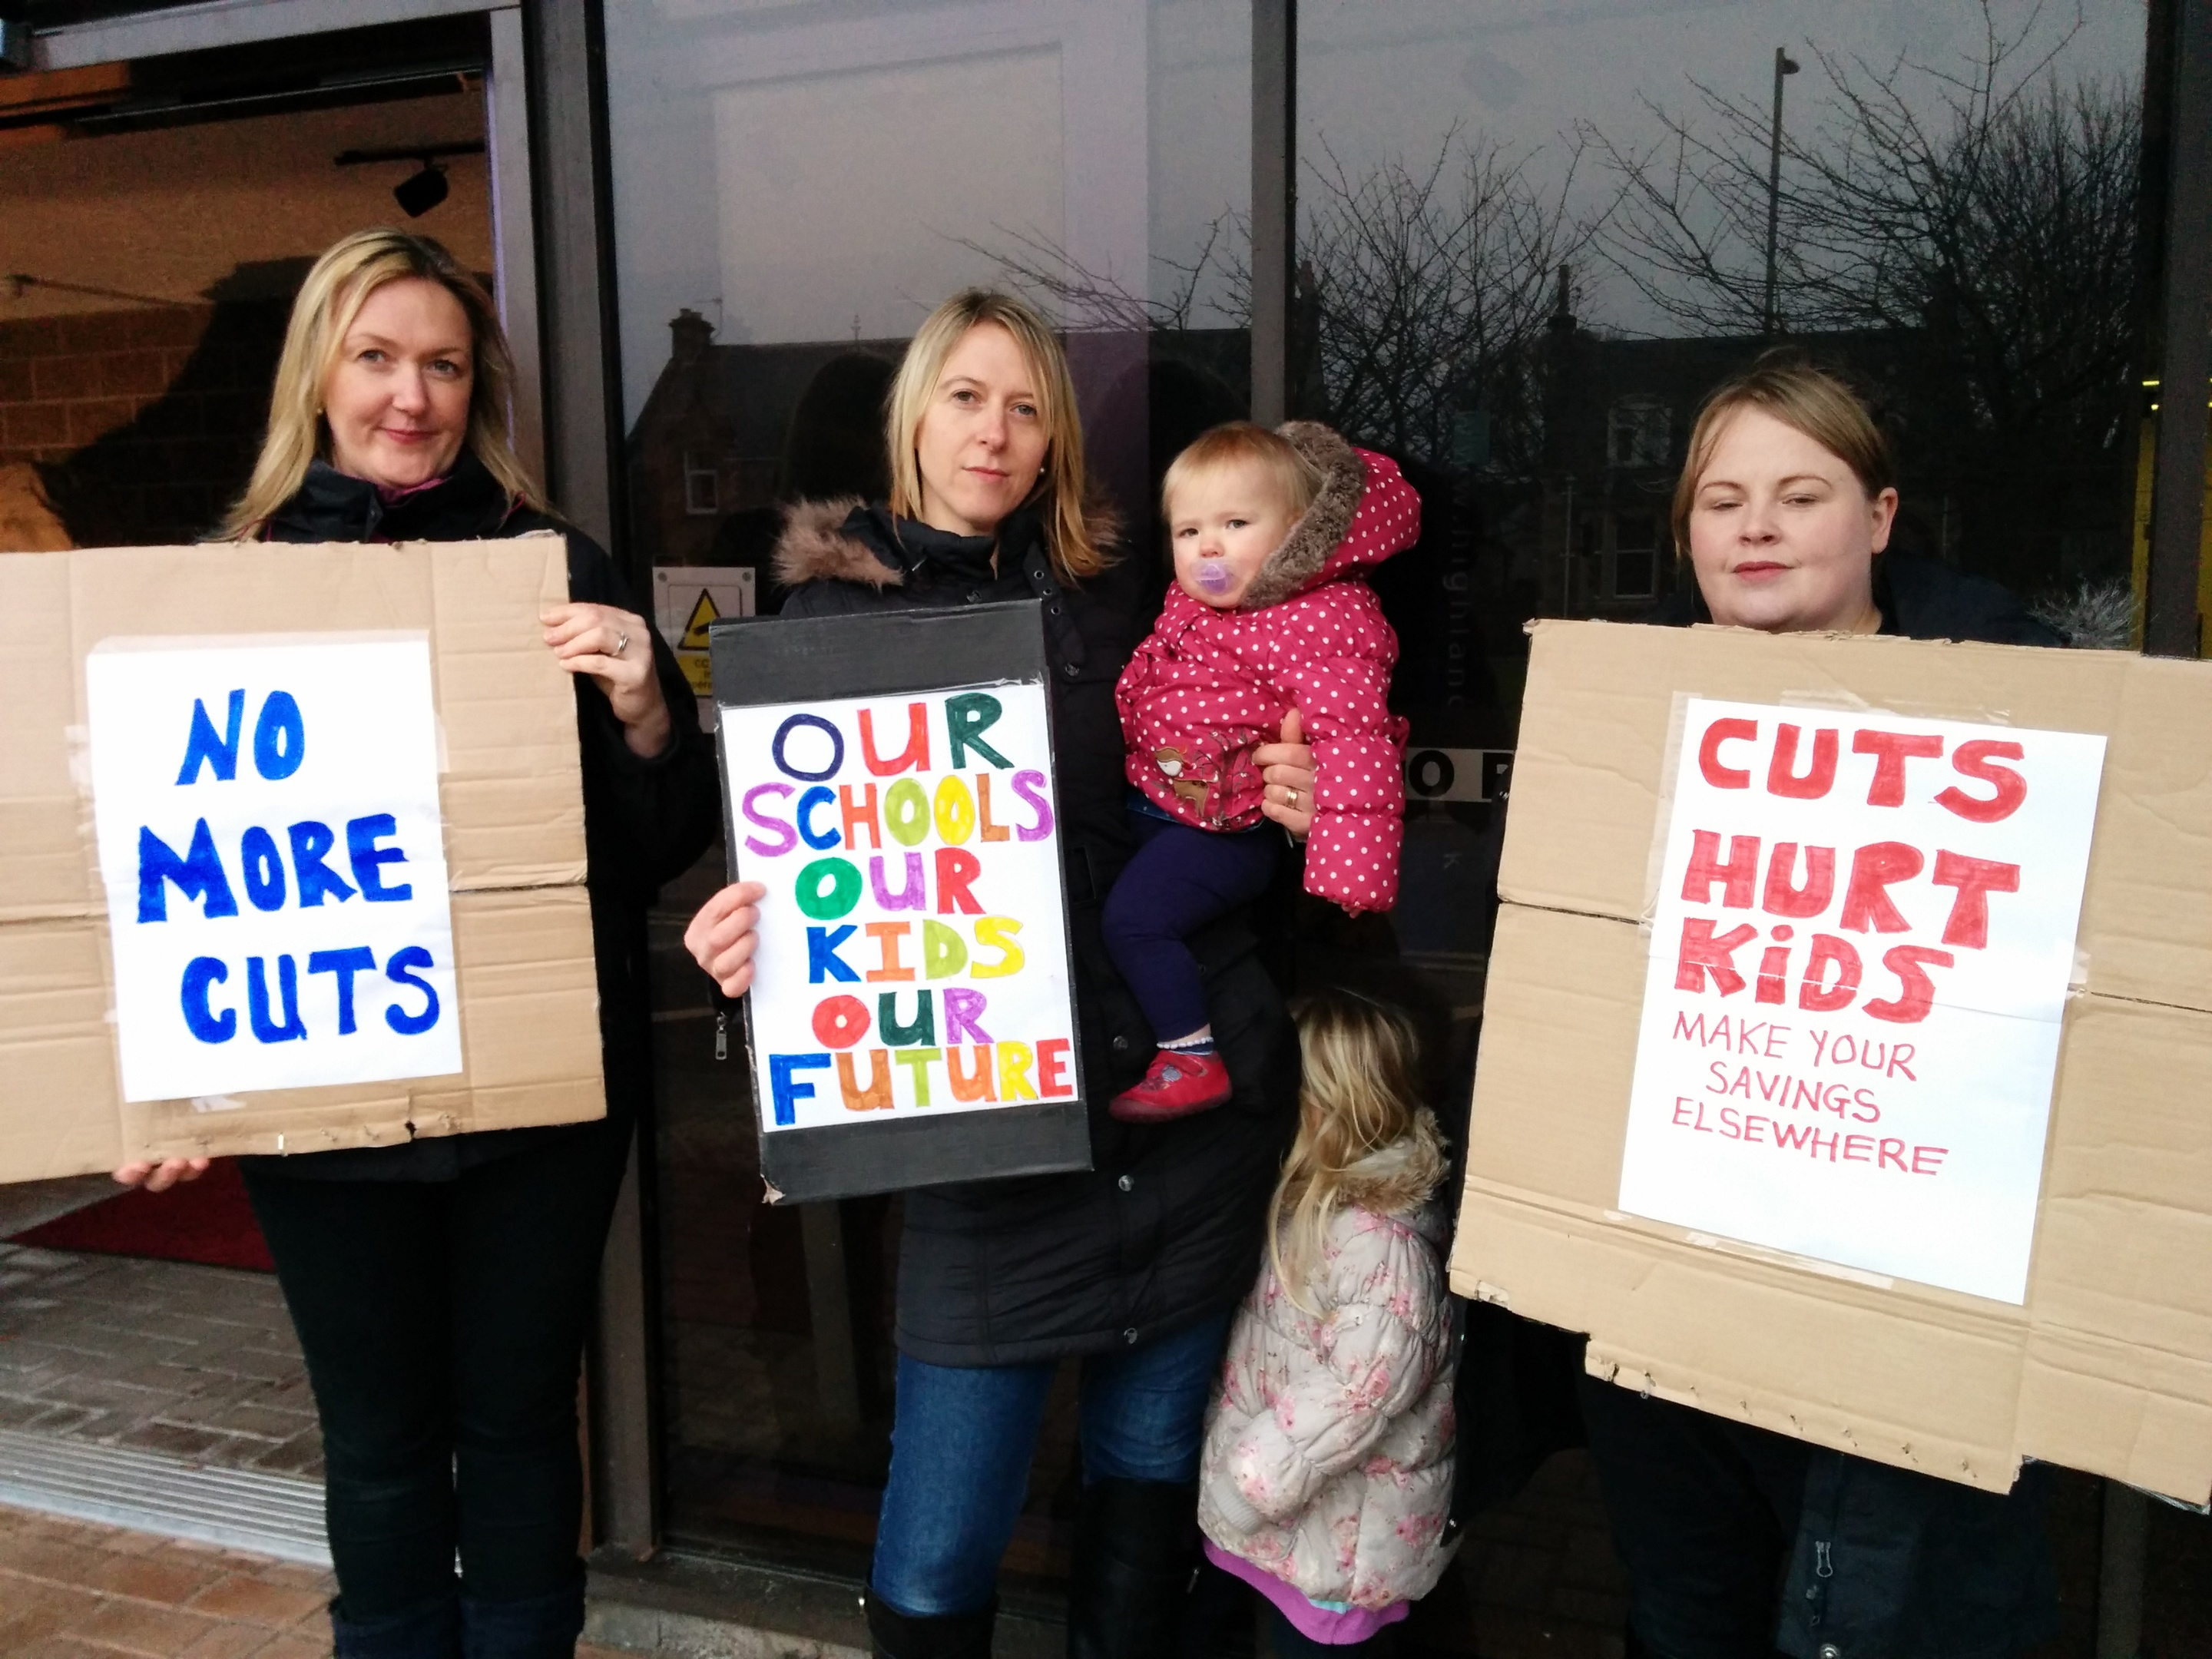 Muir of Ord mothers Tracy Underwood, Angela Budge and Natalie Shearer protest outside Highland Council's headquarters ahead of the local authority's budget meeting.